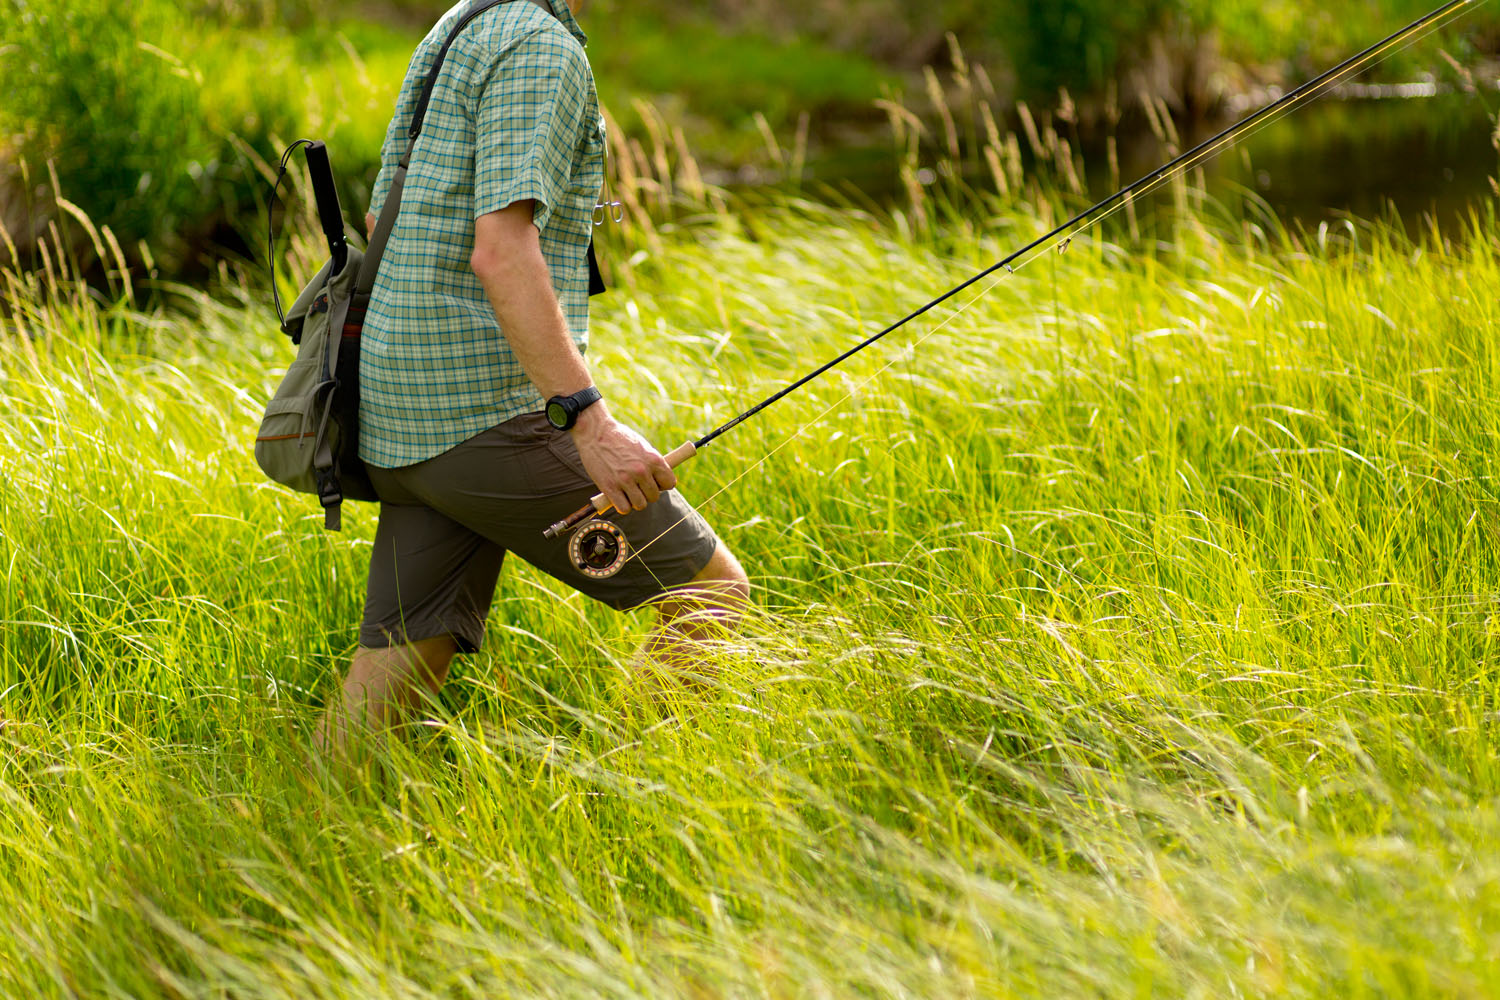 Lifestyle: Christopher Solomon walking through deep grass while fly fishing the Roaring Fork River, Carbondale, Colorado